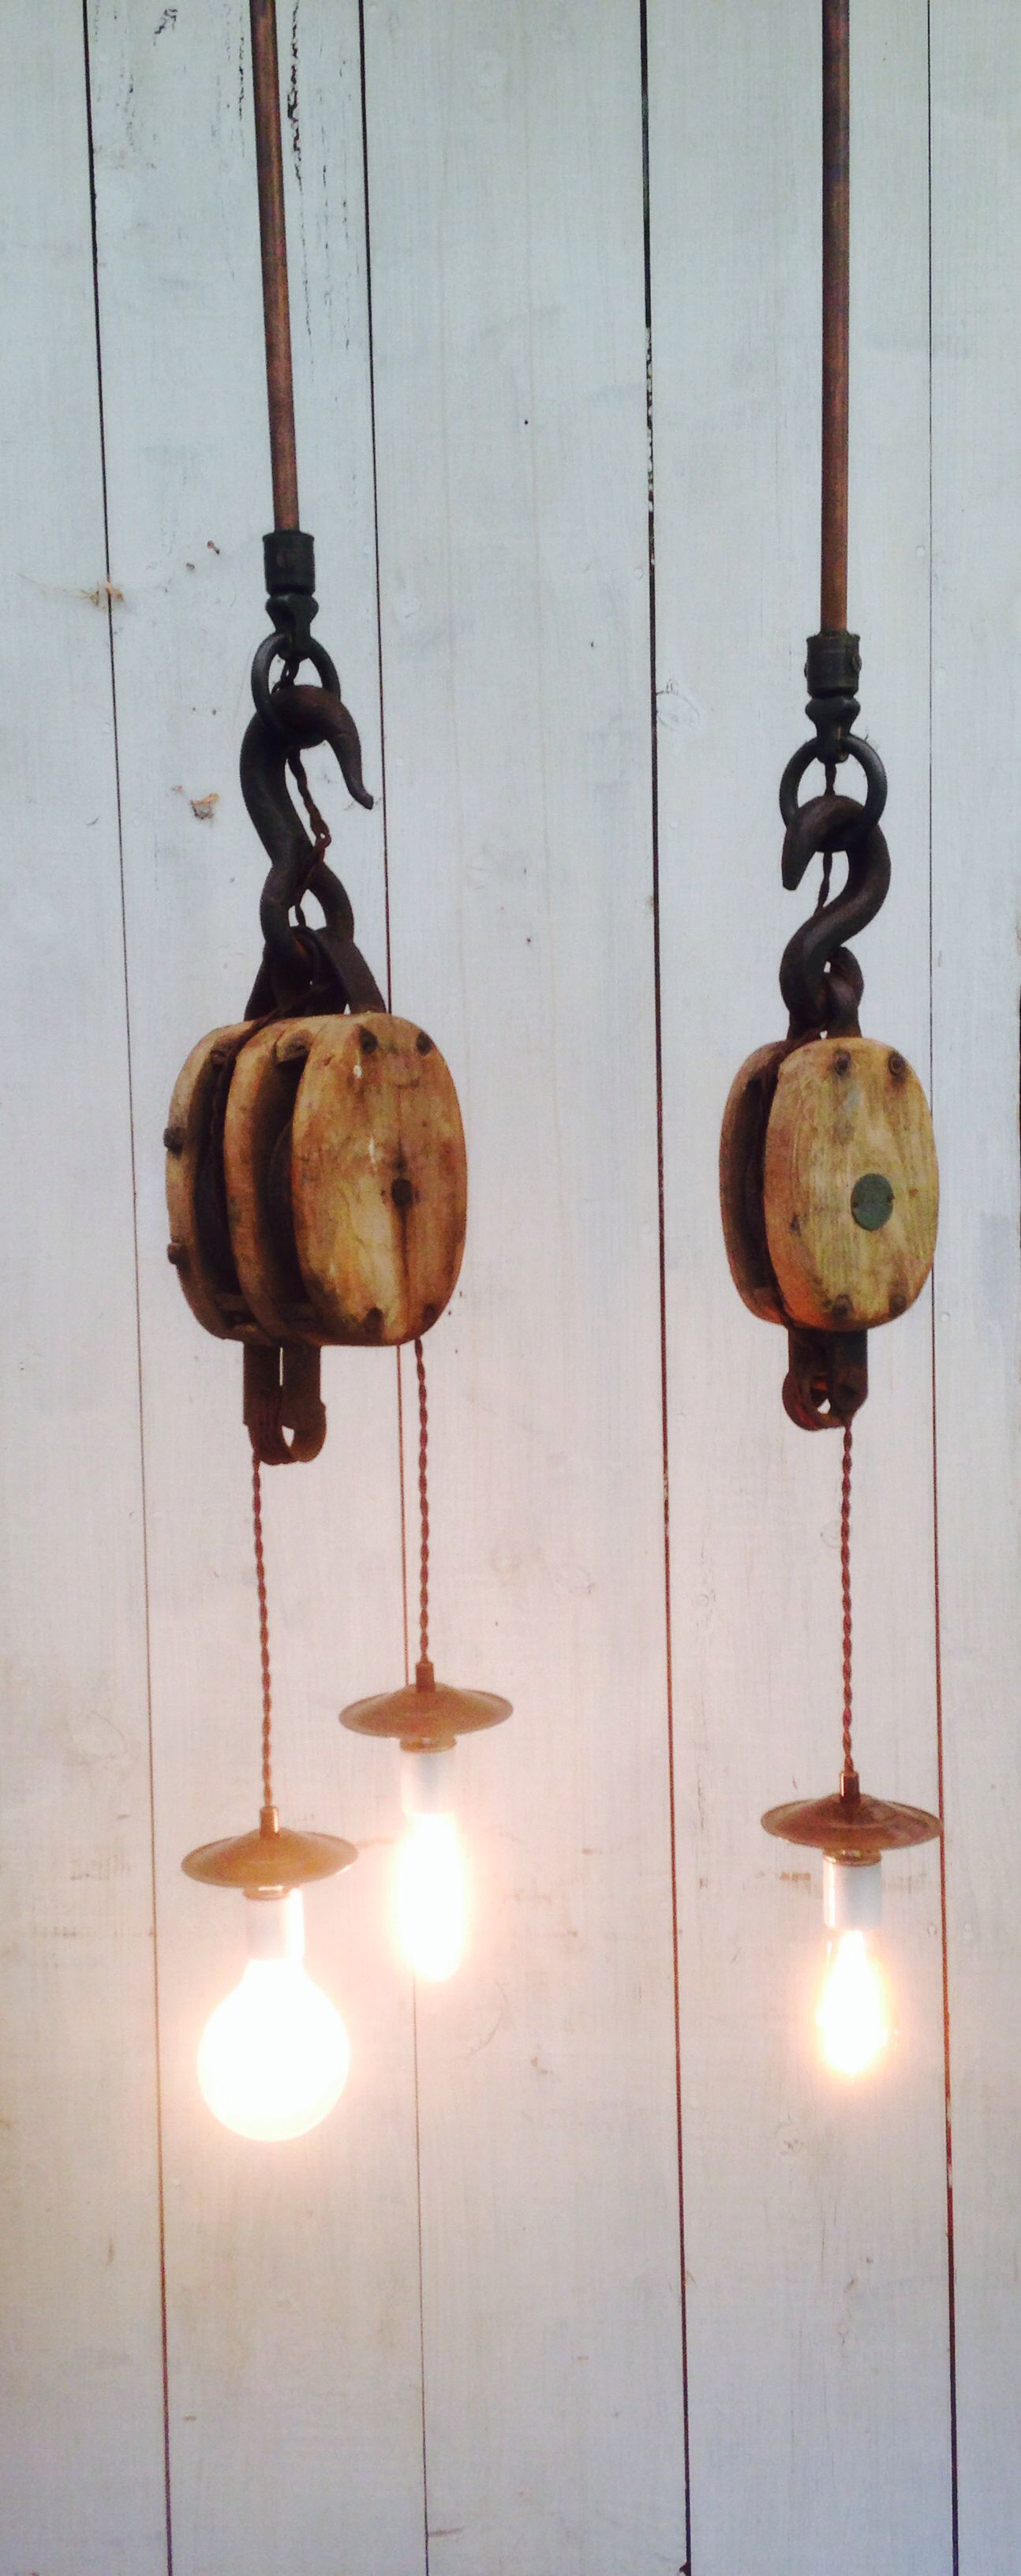 Just Finished These Barn Block And Tackle Lights With Rayon Covered Wiring In Attic Wire Copper Rods Sweet High Beams Ltd